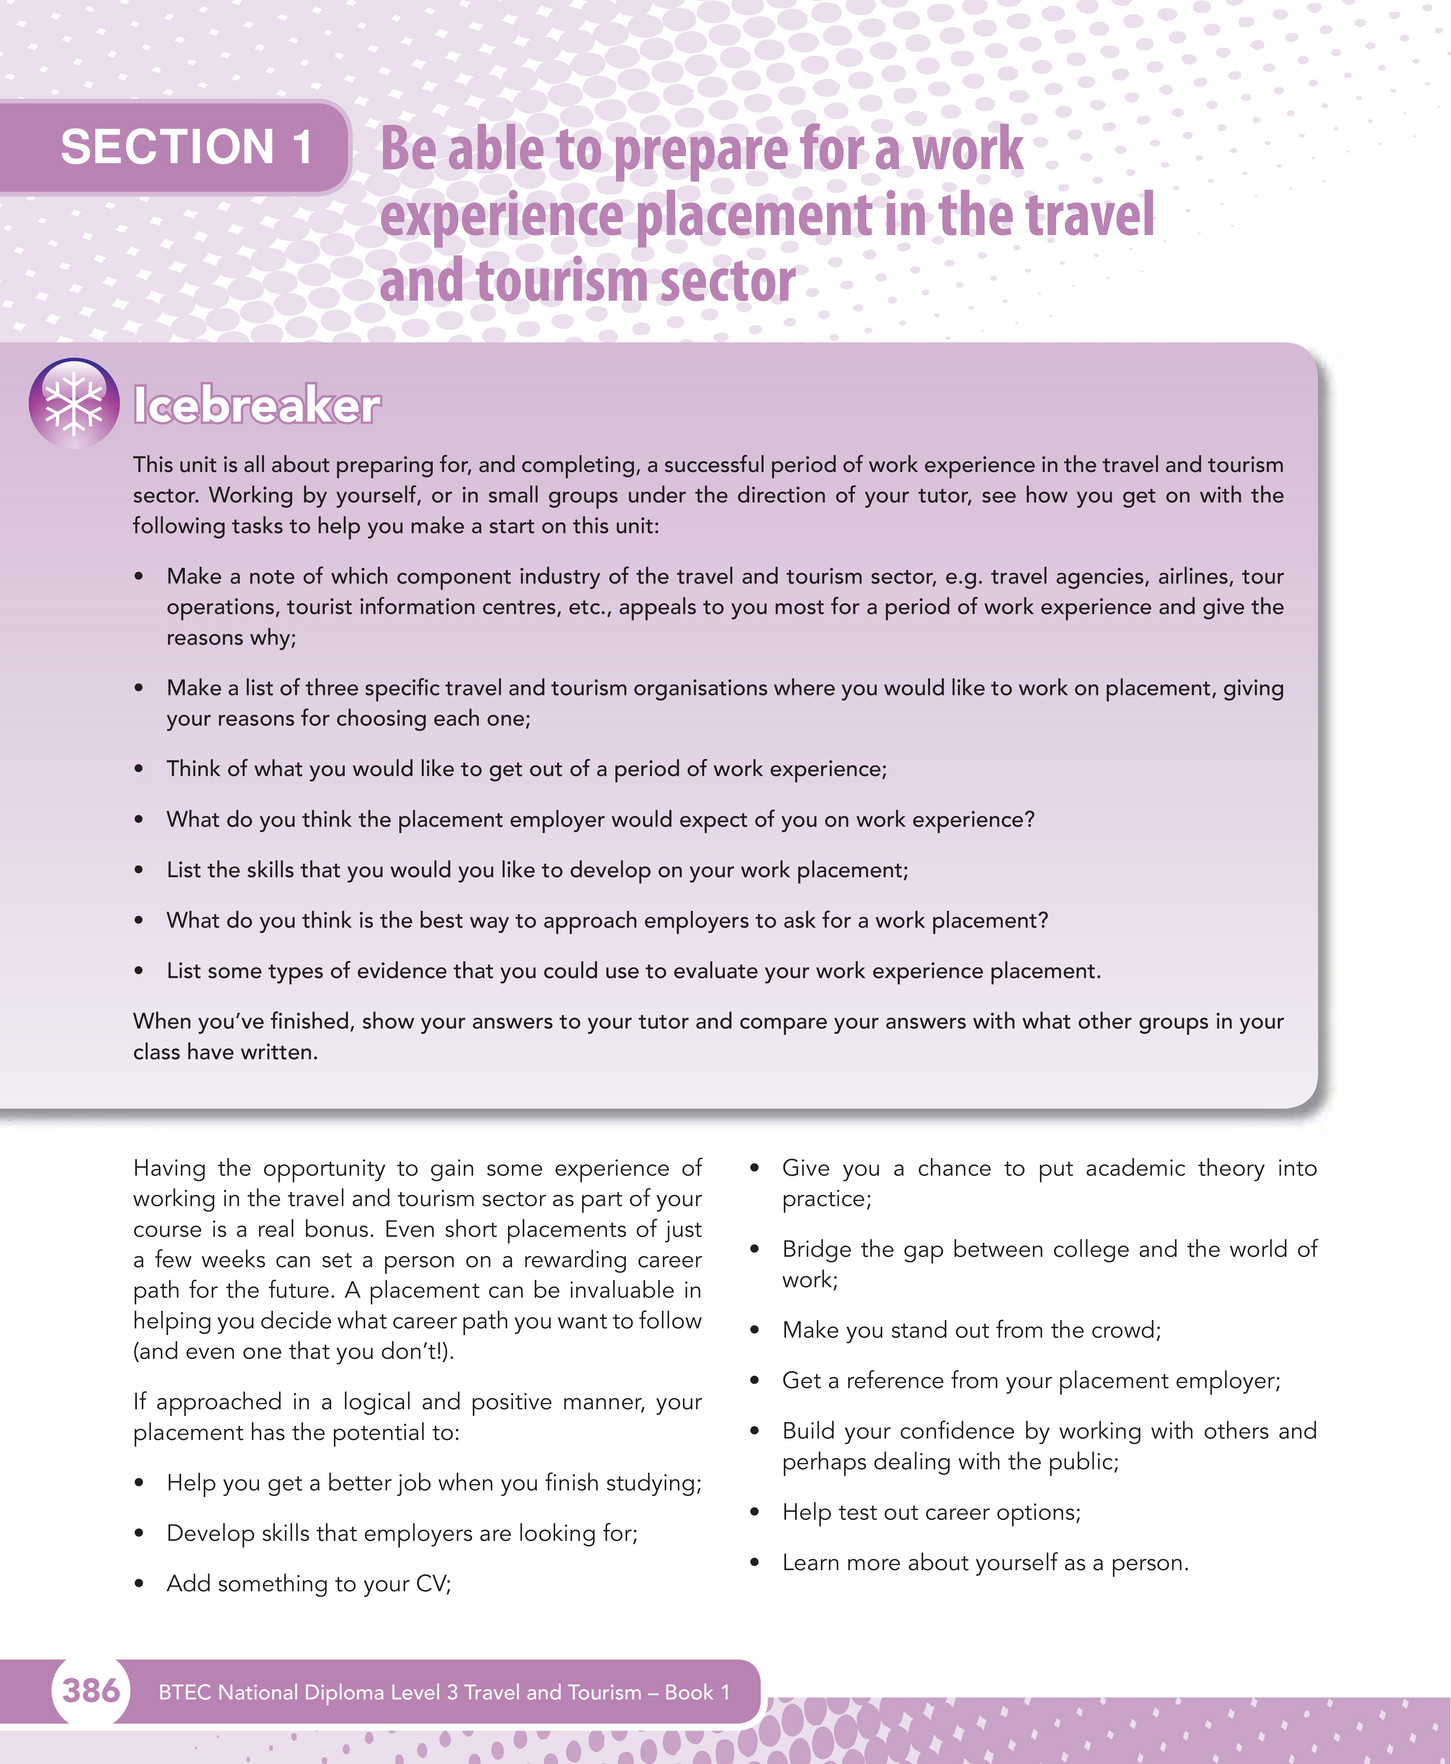 travel tourism publishing unit 22 work experience in the get a reference from your placement employer build your confidence by working others and perhaps dealing the public